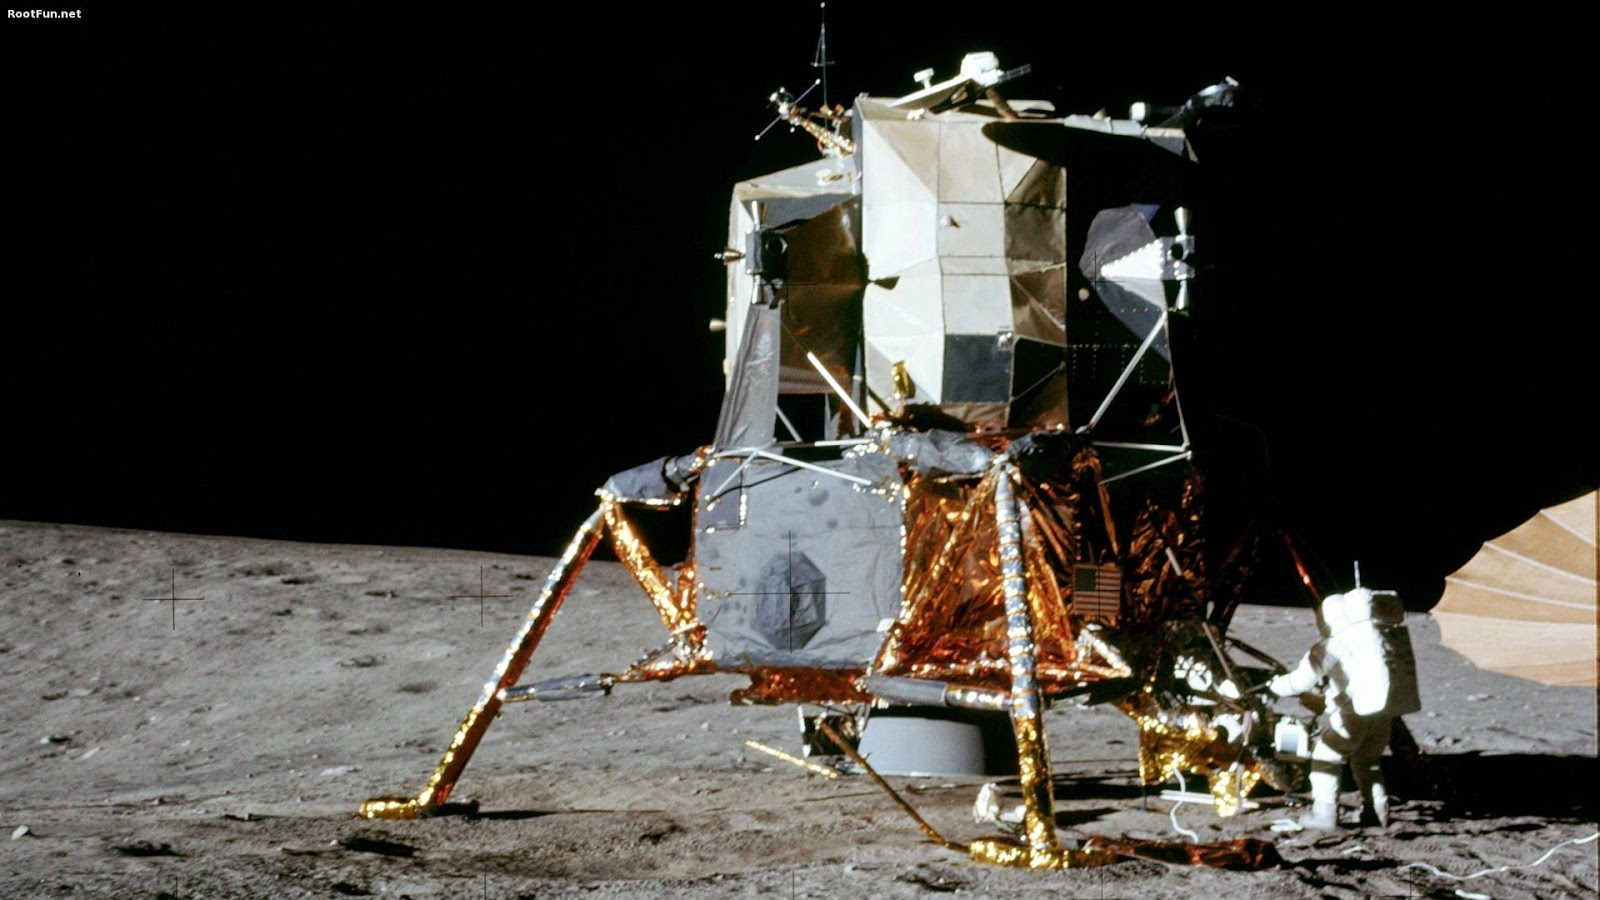 apollo lunar lander instruments - photo #15